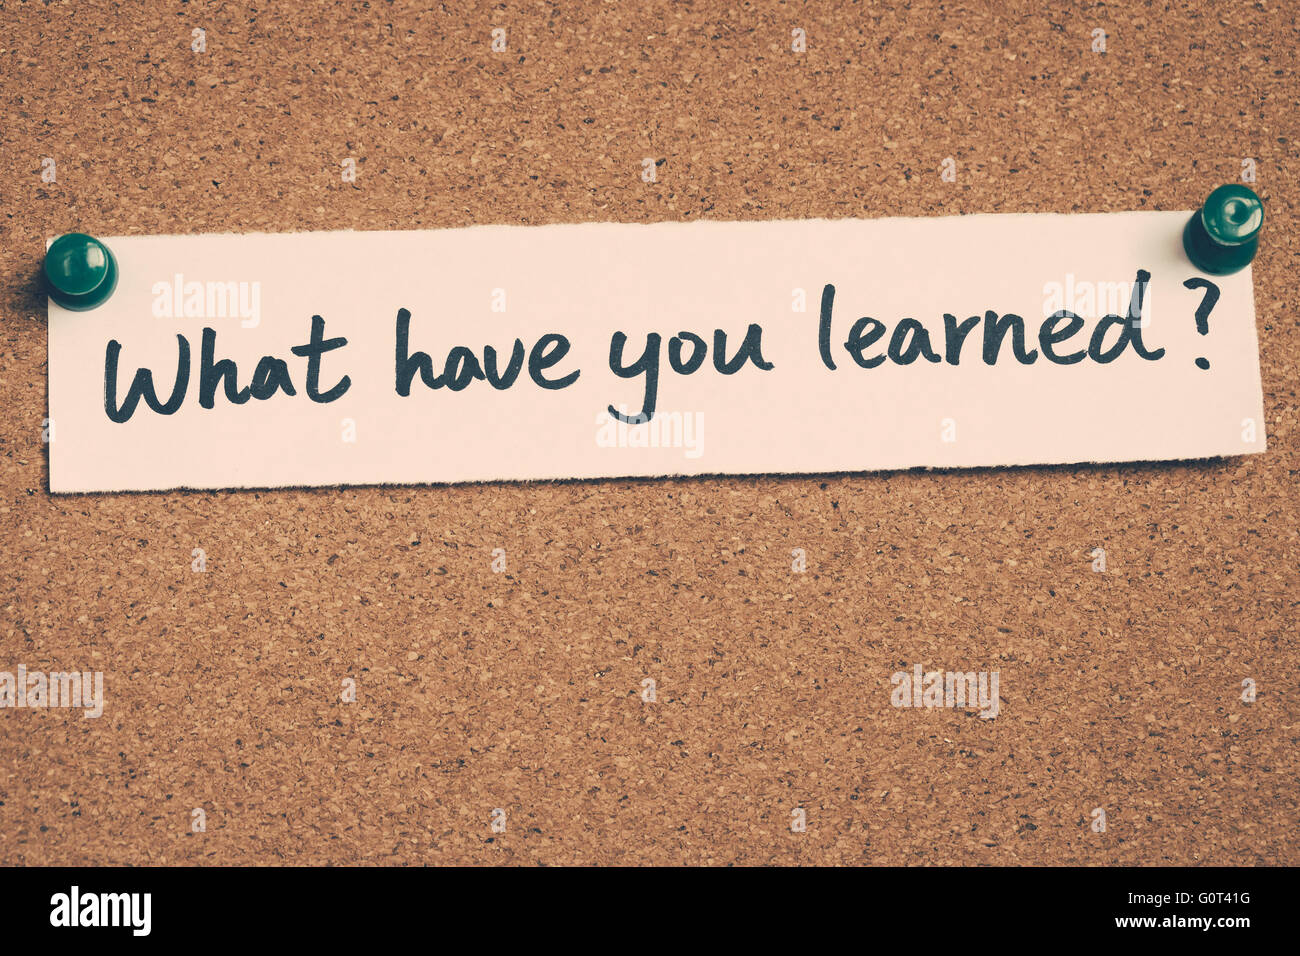 what have you learned - Stock Image